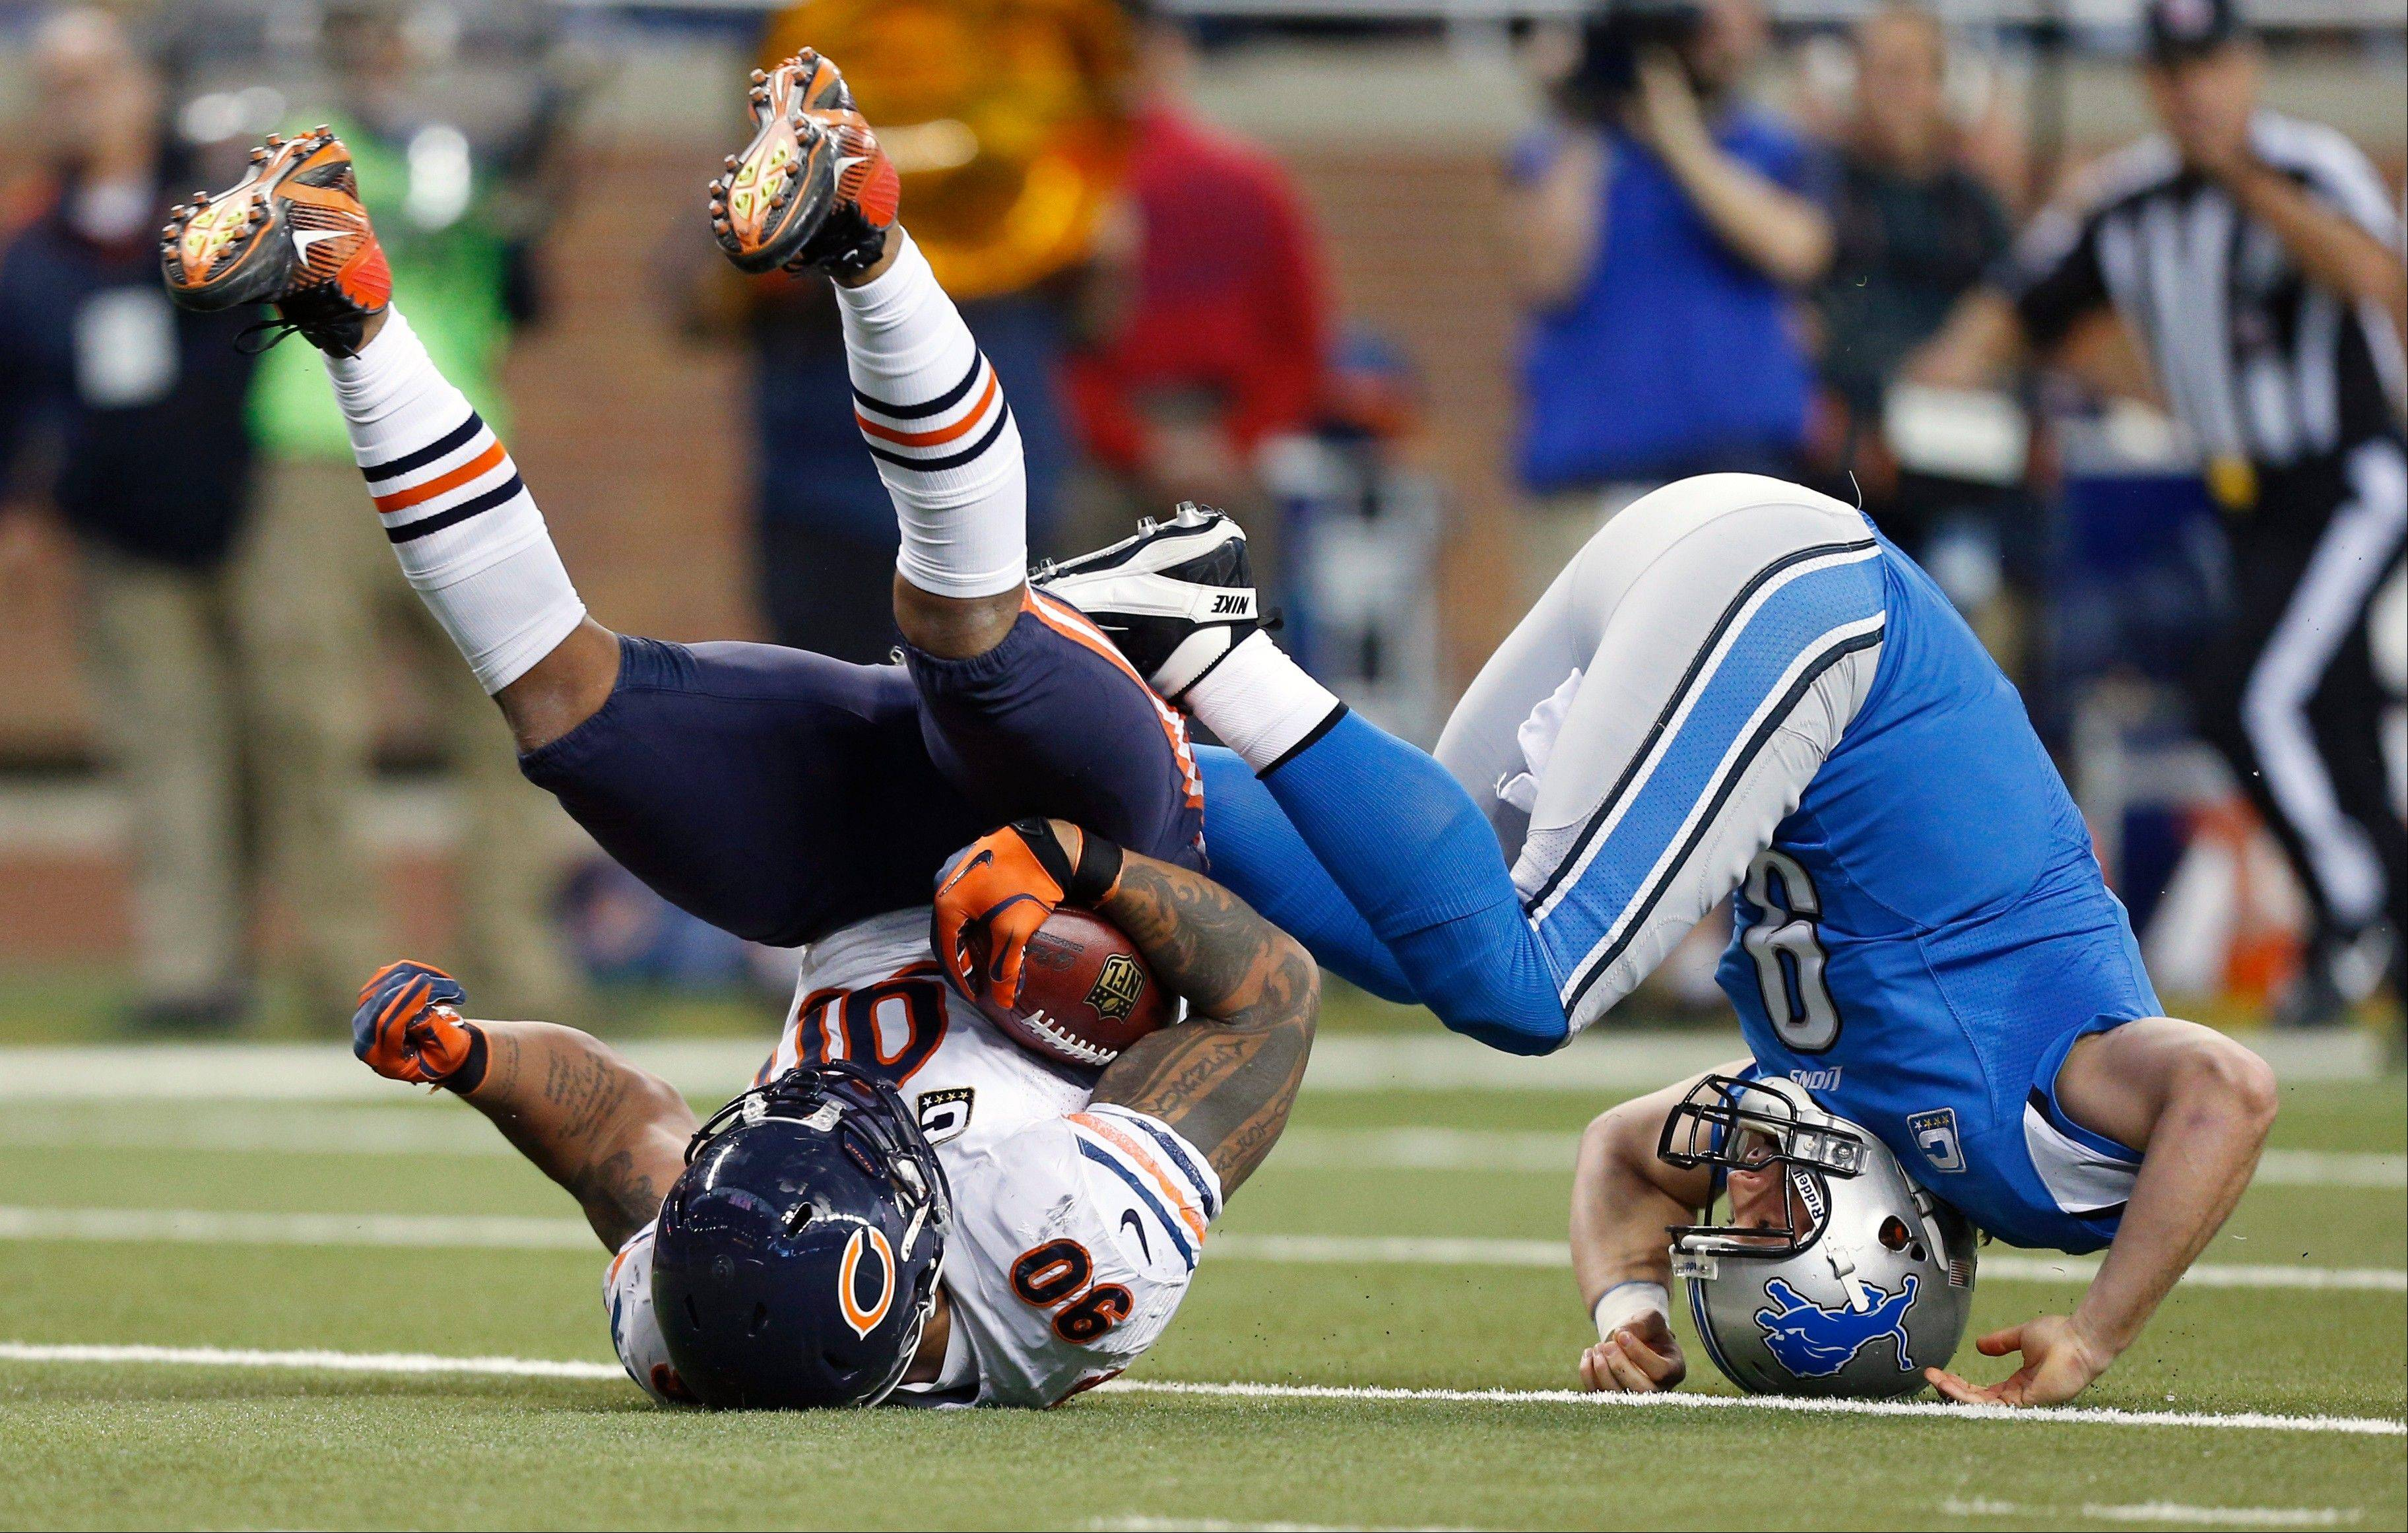 Chicago Bears defensive end Julius Peppers (90) recovers a loose ball and is stopped by Detroit Lions quarterback Matthew Stafford (9) during the second quarter of an NFL football game at Ford Field in Detroit, Sunday, Dec. 30, 2012.